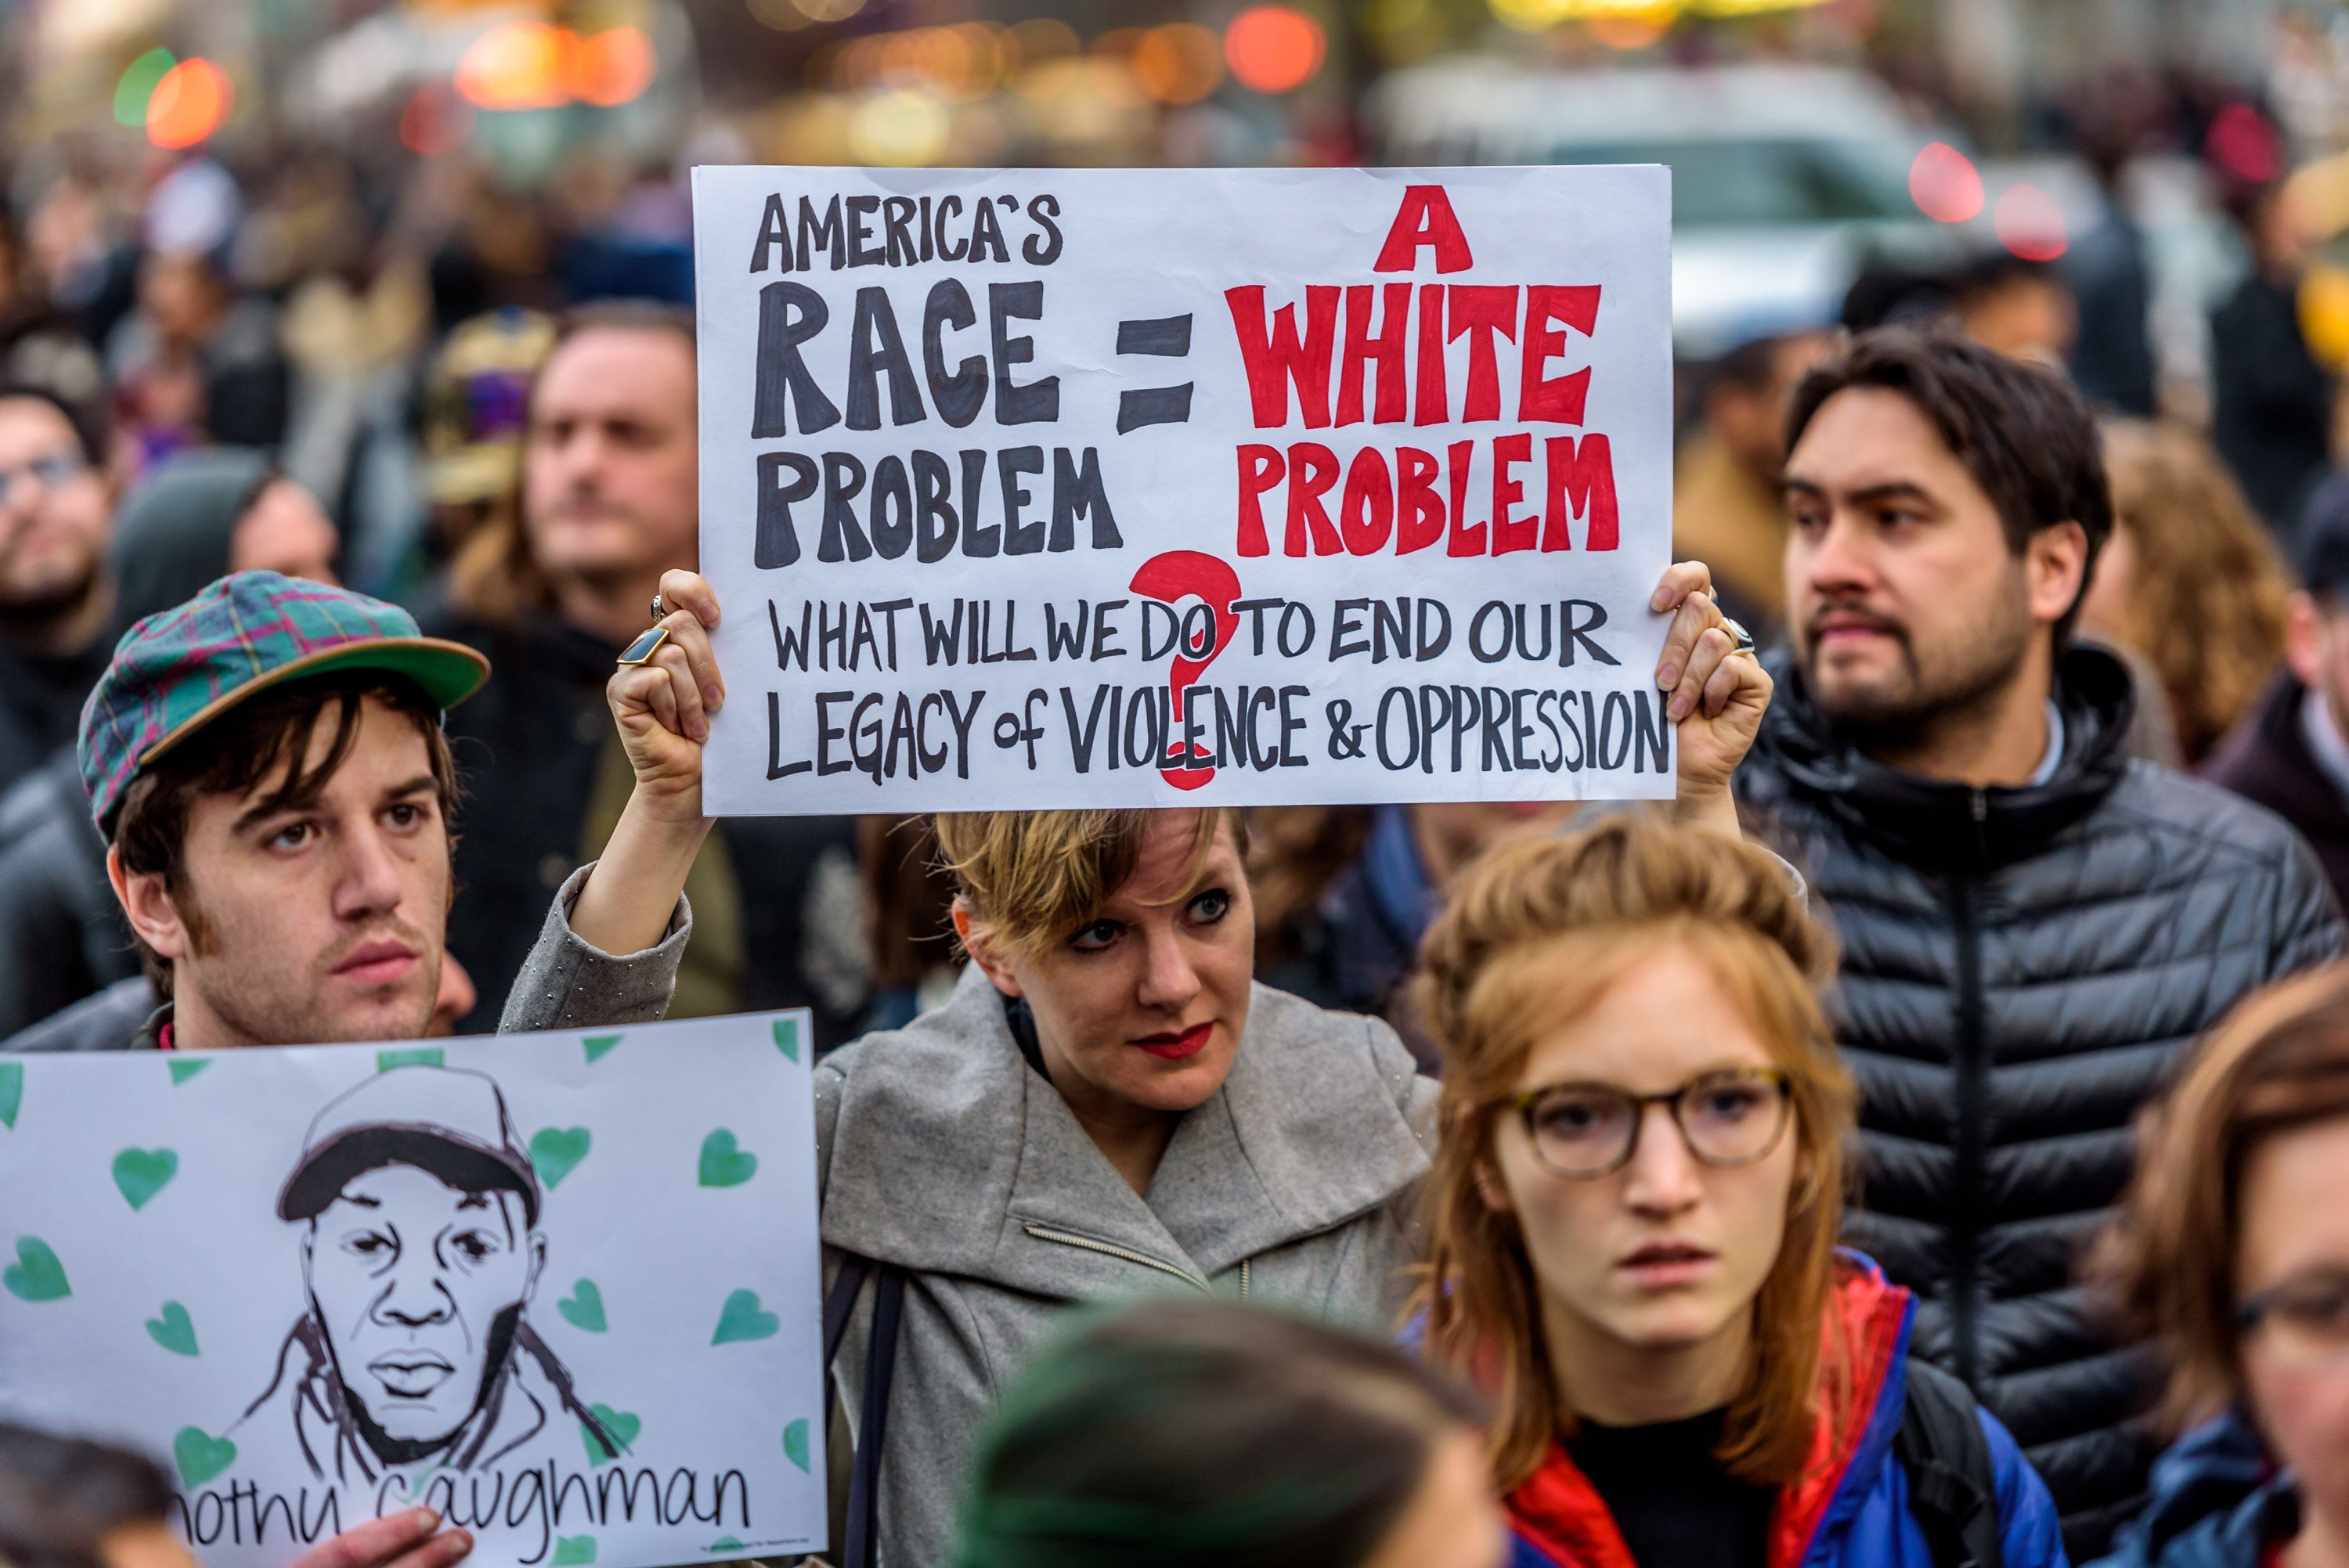 MIDTOWN MANHATTAN, NEW YORK, UNITED STATES - 2017/03/24: A crowd of about 300 people gathered in Union Square on the evening of March 24, 2017; for an emergency action to say Enough is Enough. The crowd rallied and proceed to march to Herald Square in Midtown Manhattan where Timothy Caughman was killed and hold a moment of silence to honor Timothy and other victims of Hate Crimes and to say no to hate crimes and domestic terrorism. (Photo by Erik McGregor/Pacific Press/LightRocket via Getty Images)